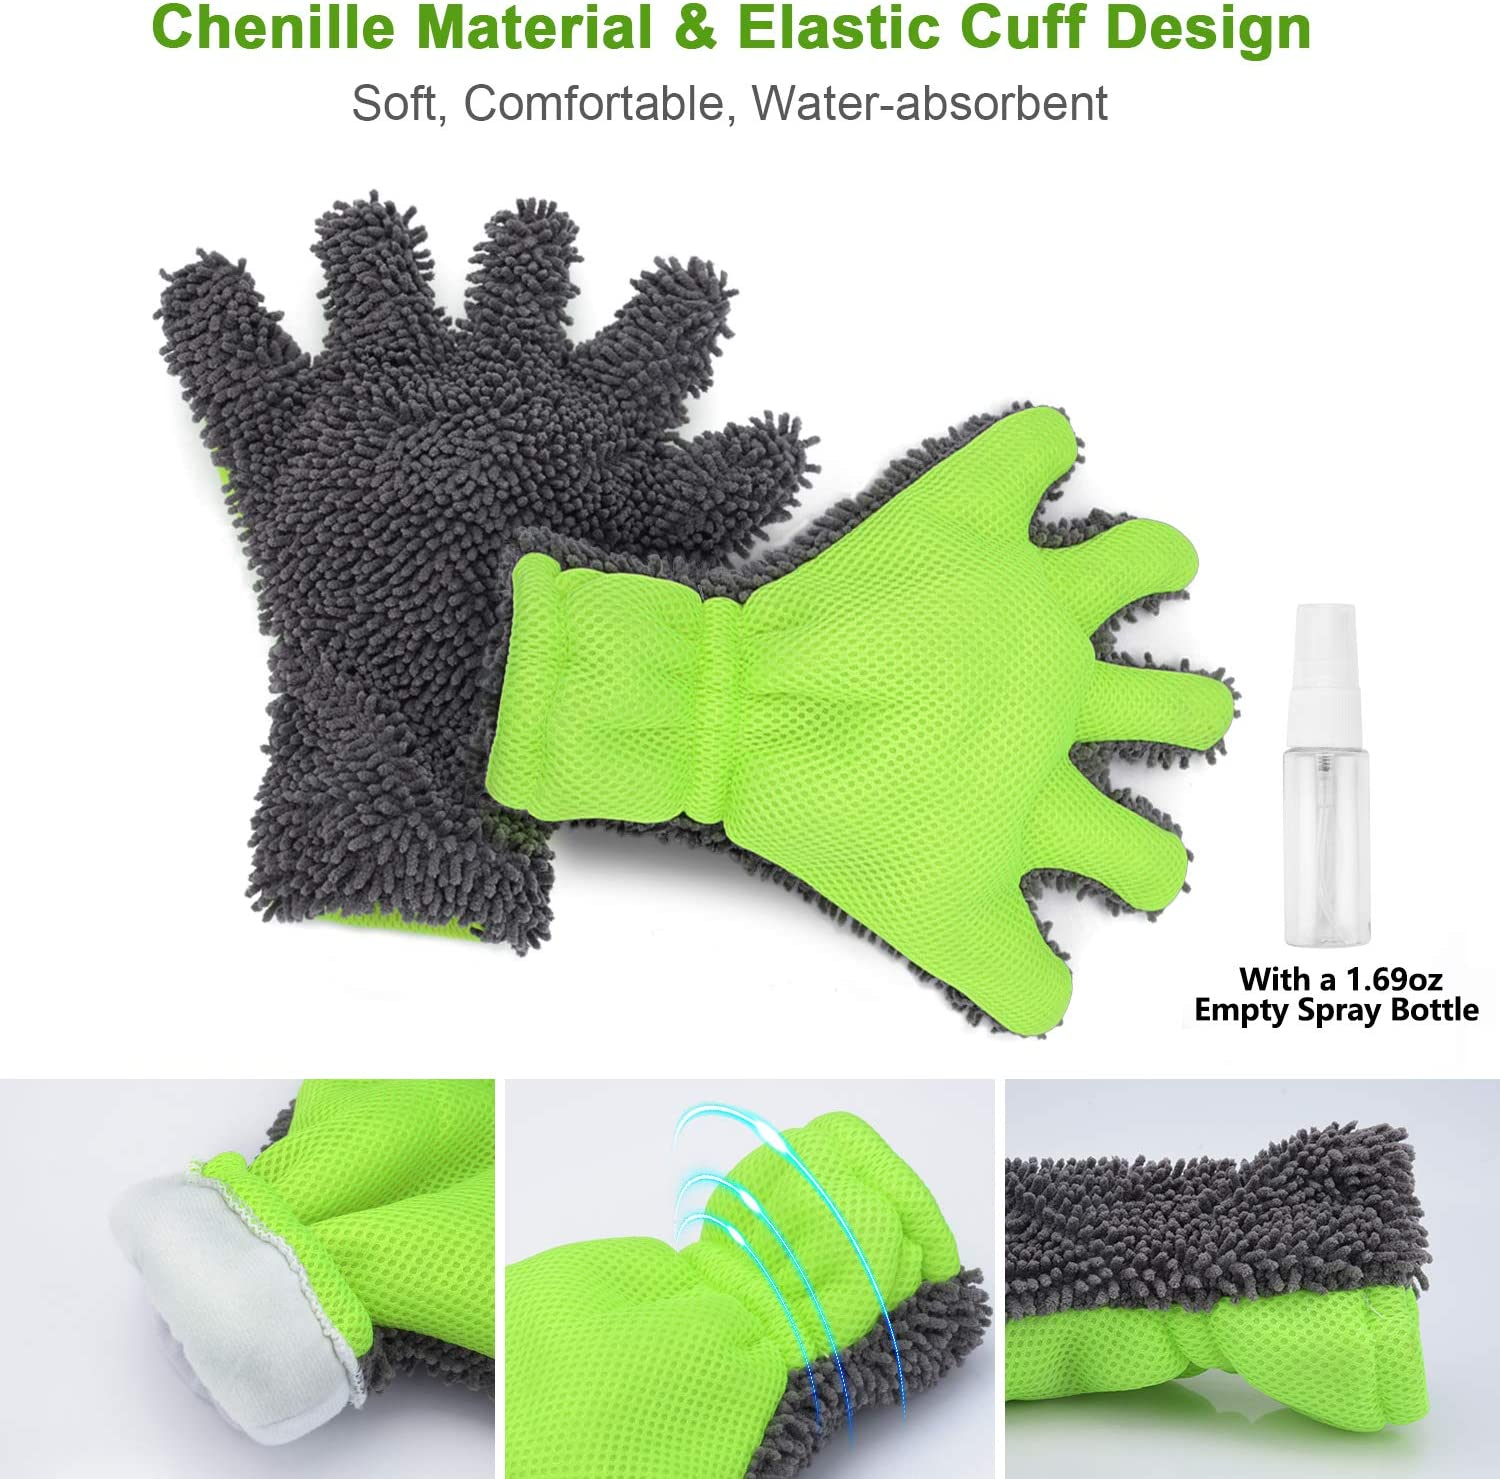 Extra Large Size XINDELL Chenille Microfiber Car Wash Glove for Car Exterior Interior Cleaning Scratch Free /& Lint Free 5 Finger Washing Mitten 1XCar Wash Mitt X XINDELL Car Wash Mitt